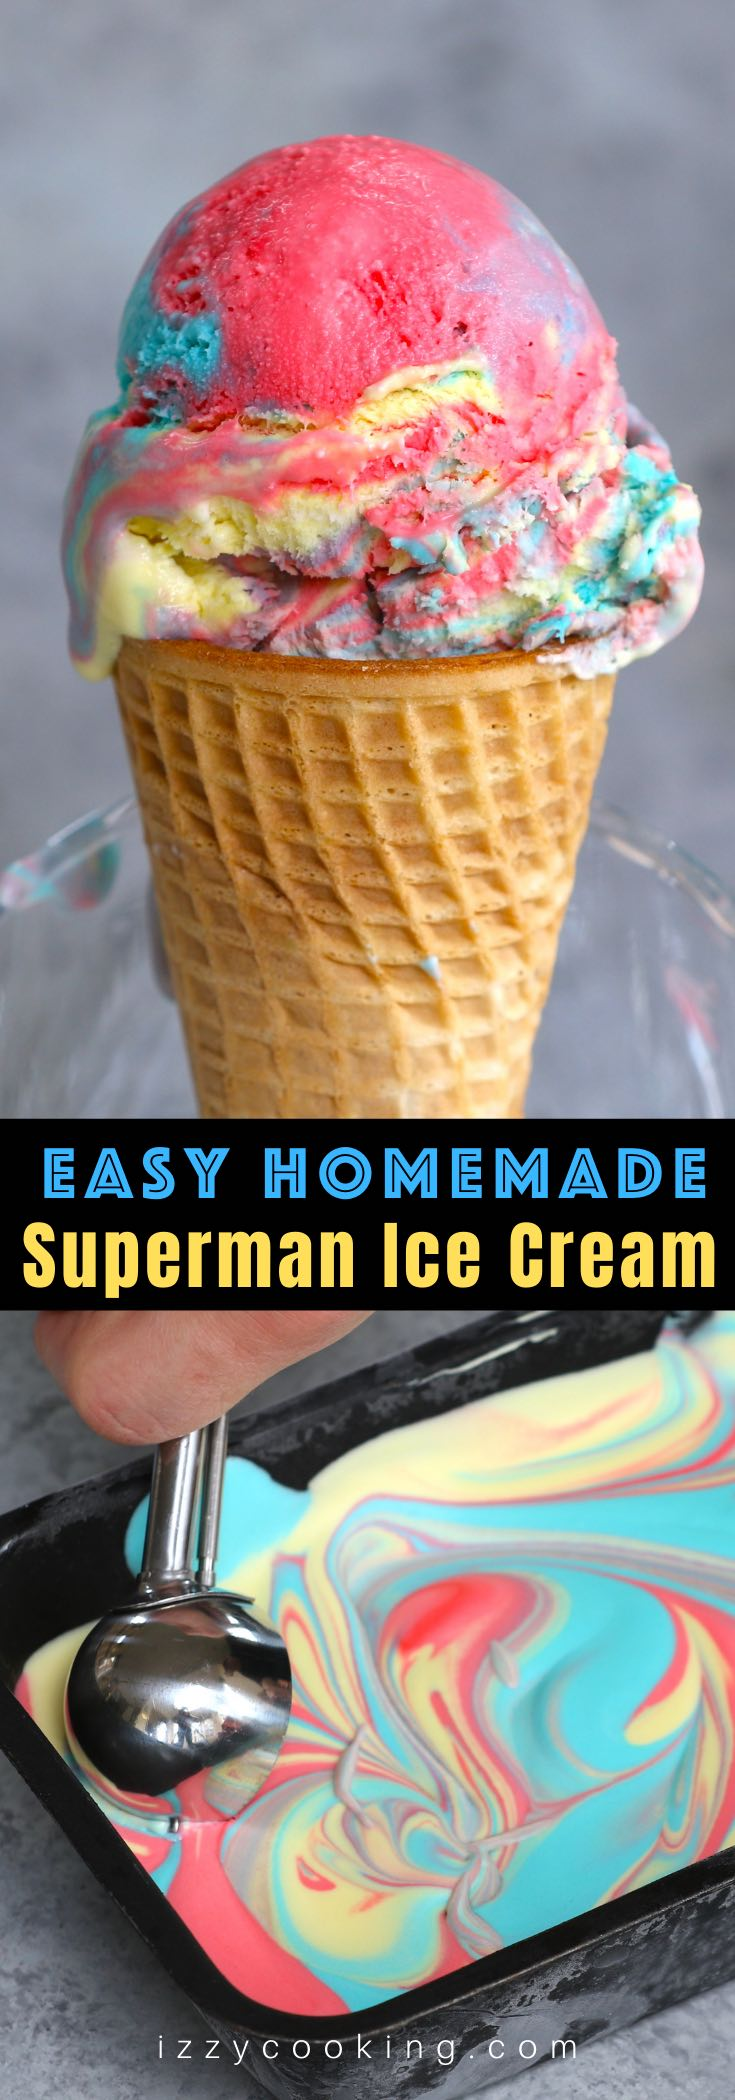 Looking for a fun way to cool down on a hot day? Look no further than Superman Ice Cream – Michigan's favorite ice cream flavor! Our homemade vanilla superman ice cream comes as a swirl of 3 colors: blue, red, and yellow, just like the colors of Superman's costume. This easy recipe will have you indulging in a sweet rainbow scoop in very little time.